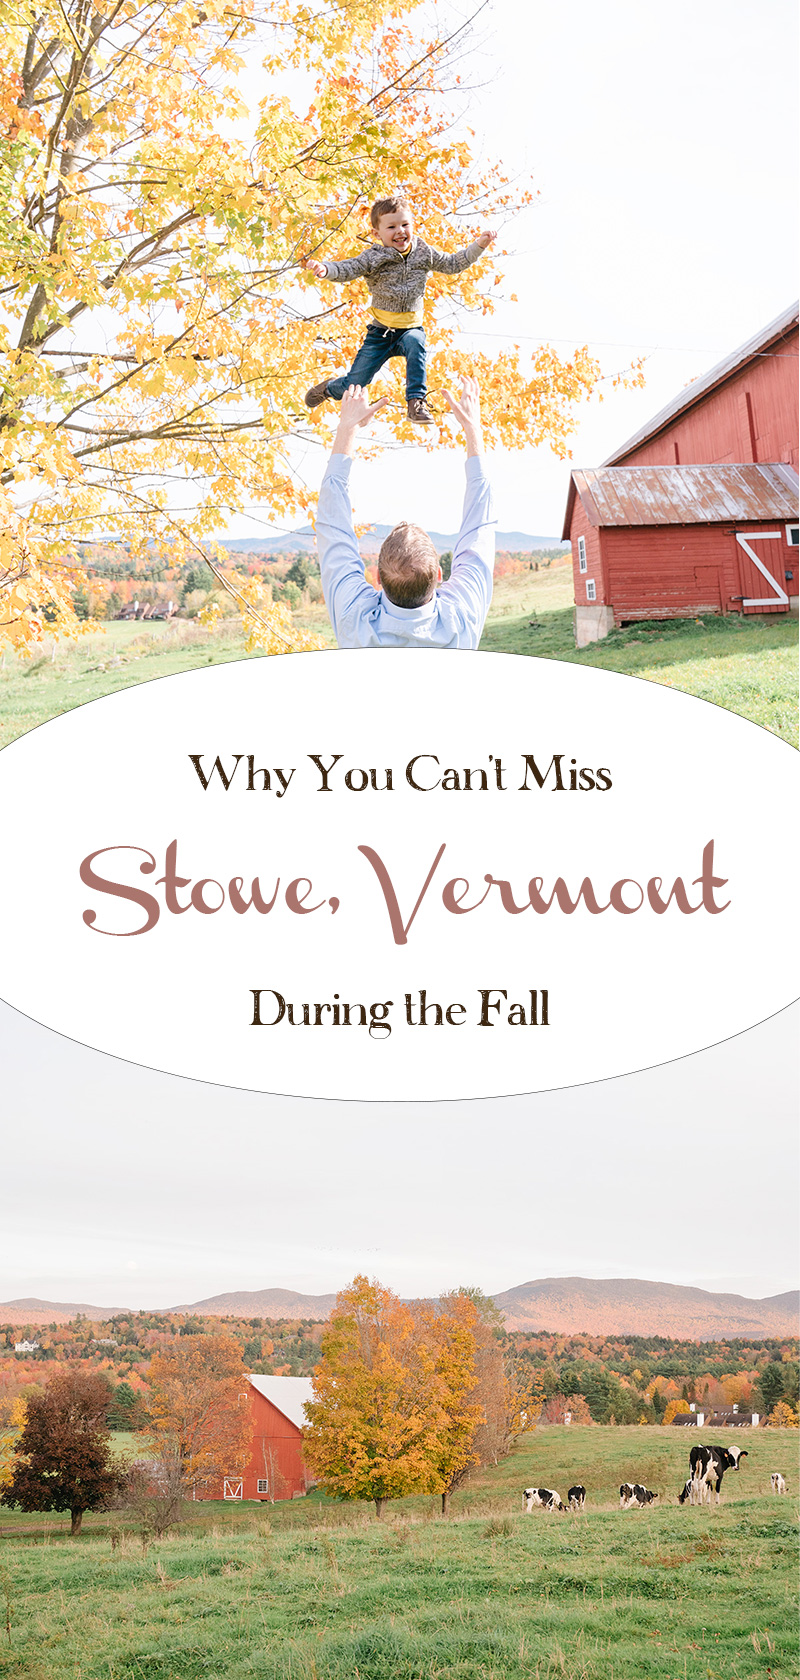 Stowe-Vermont-Travel-Guide-Why-You-Cant-Miss-Stowe-In-The-Fall